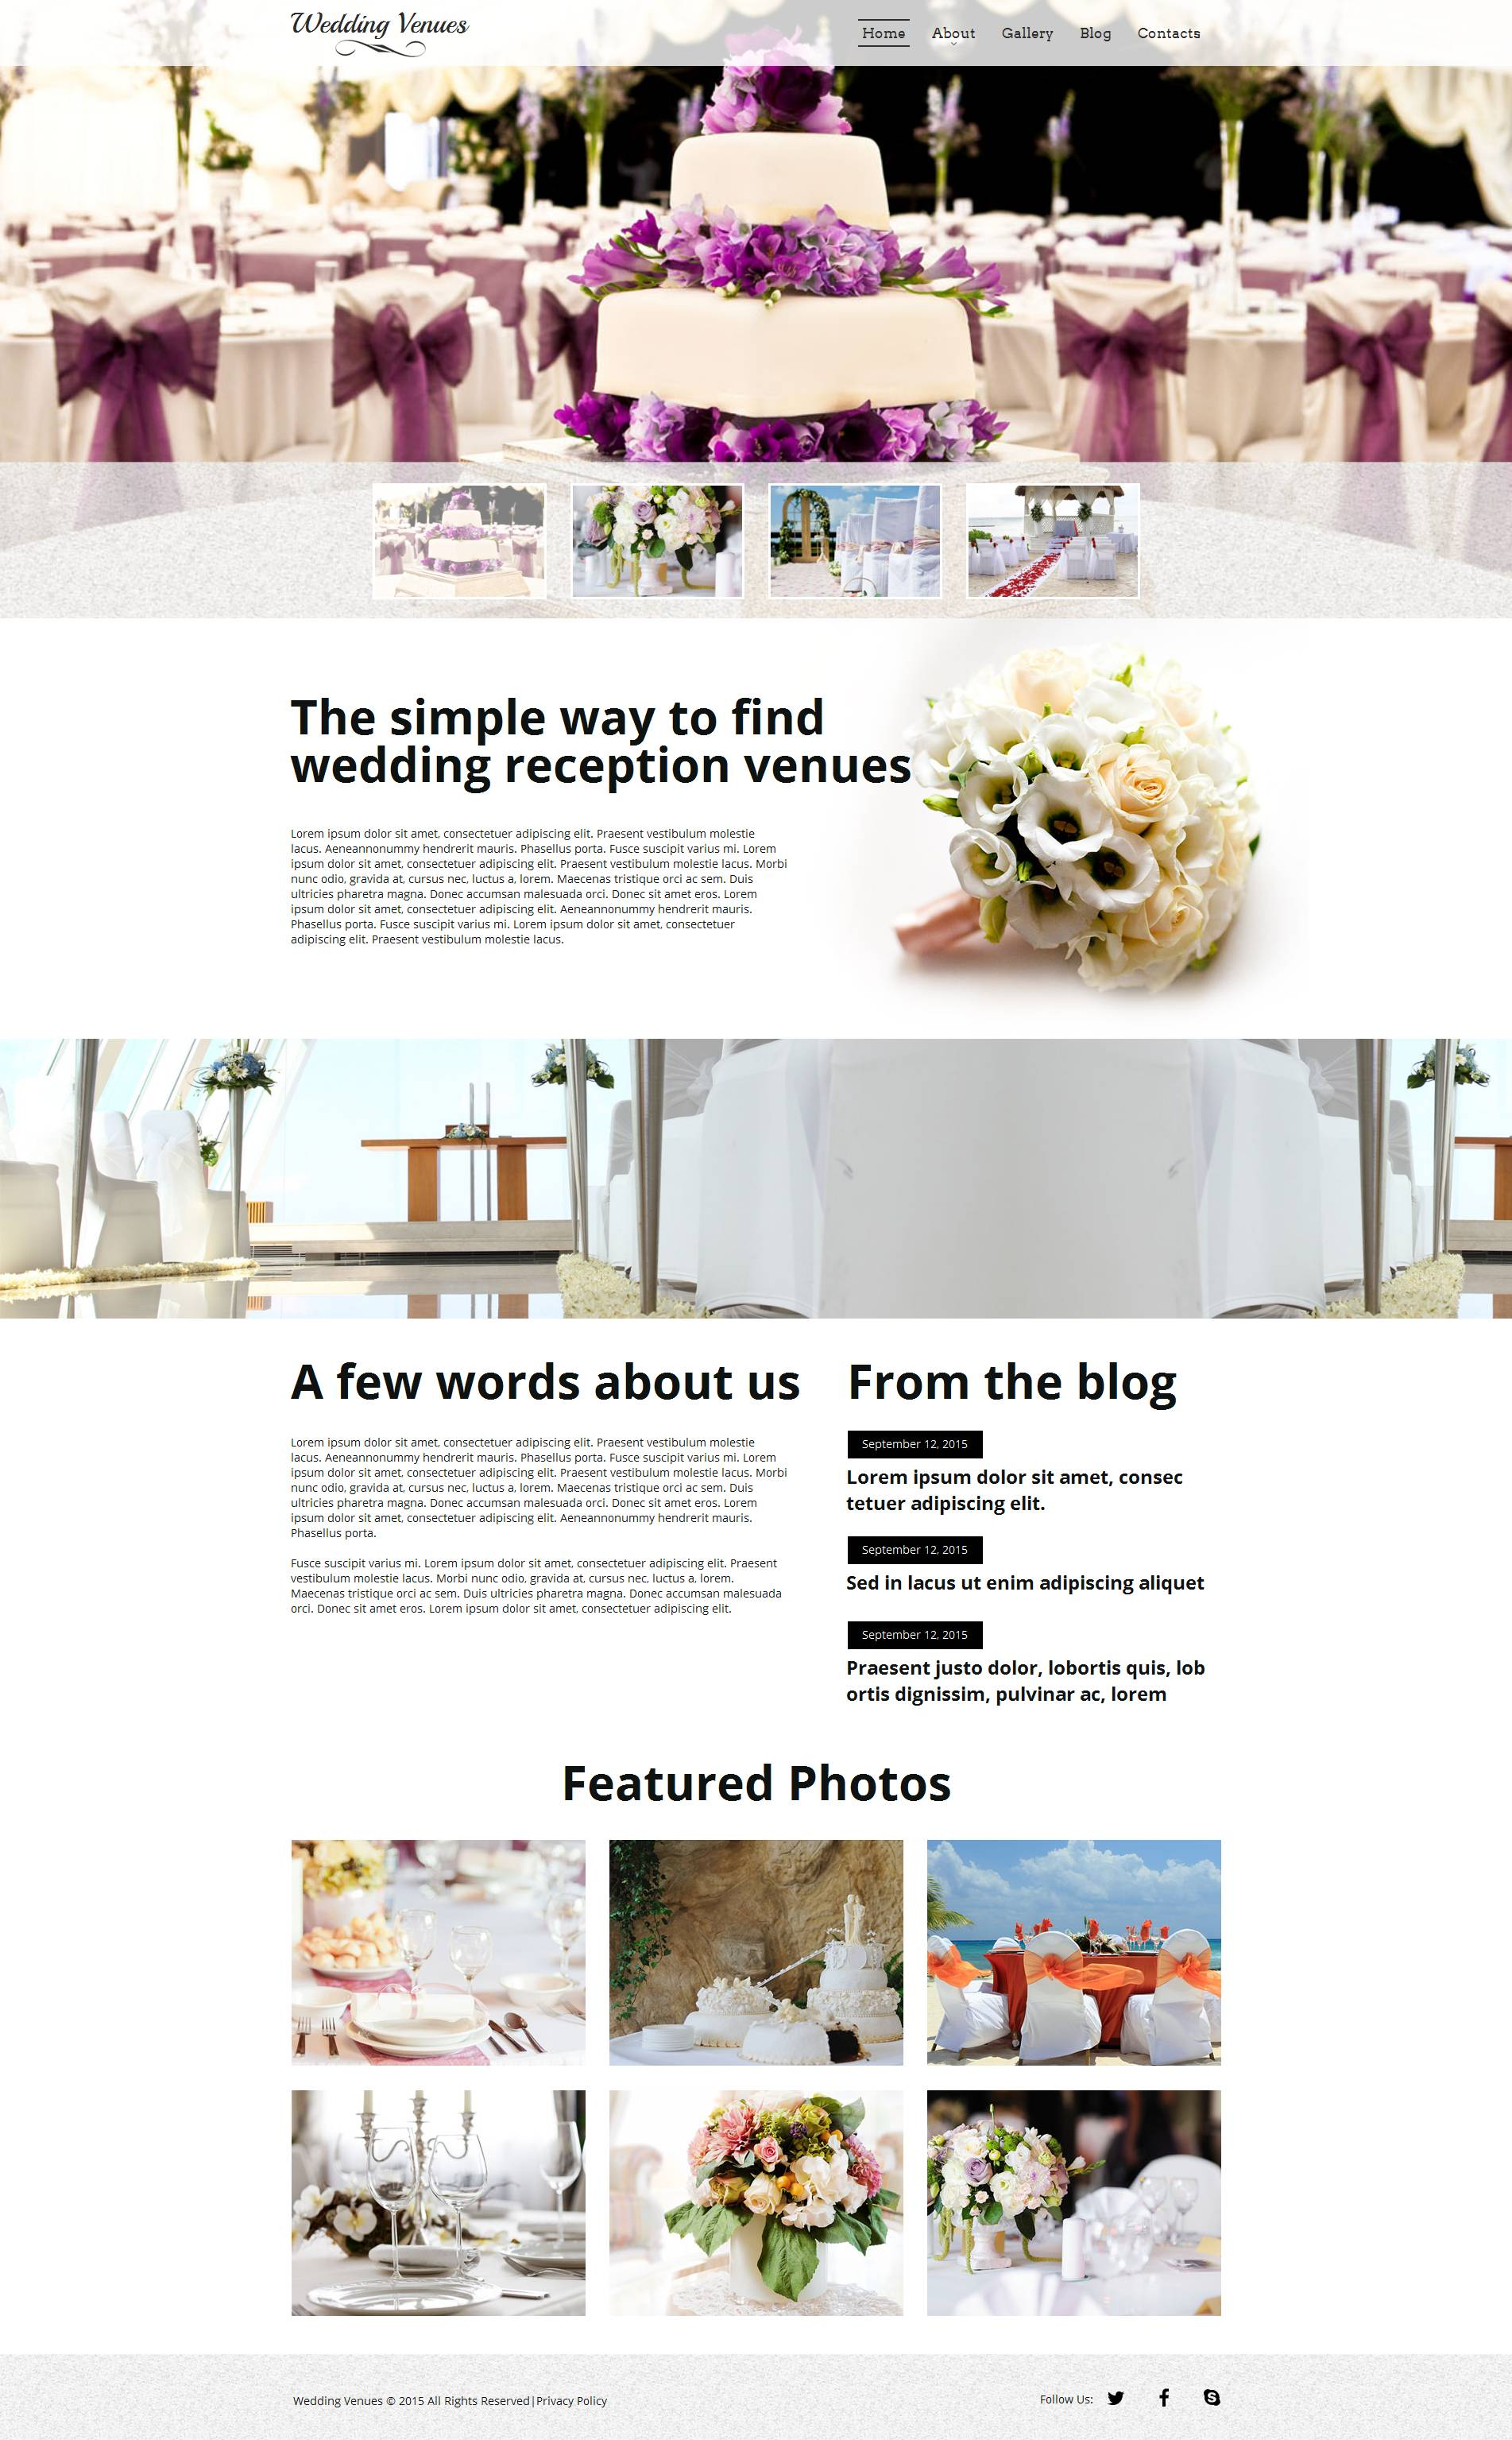 The Wedding Venues Moto CMS HTML Design 53059, one of the best Moto CMS HTML templates of its kind (wedding, most popular), also known as wedding venues Moto CMS HTML template, place Moto CMS HTML template, venue Moto CMS HTML template, event Moto CMS HTML template, party Moto CMS HTML template, city Moto CMS HTML template, beach Moto CMS HTML template, country Moto CMS HTML template, exotic Moto CMS HTML template, celebration Moto CMS HTML template, marriage and related with wedding venues, place, venue, event, party, city, beach, country, exotic, celebration, marriage, etc.